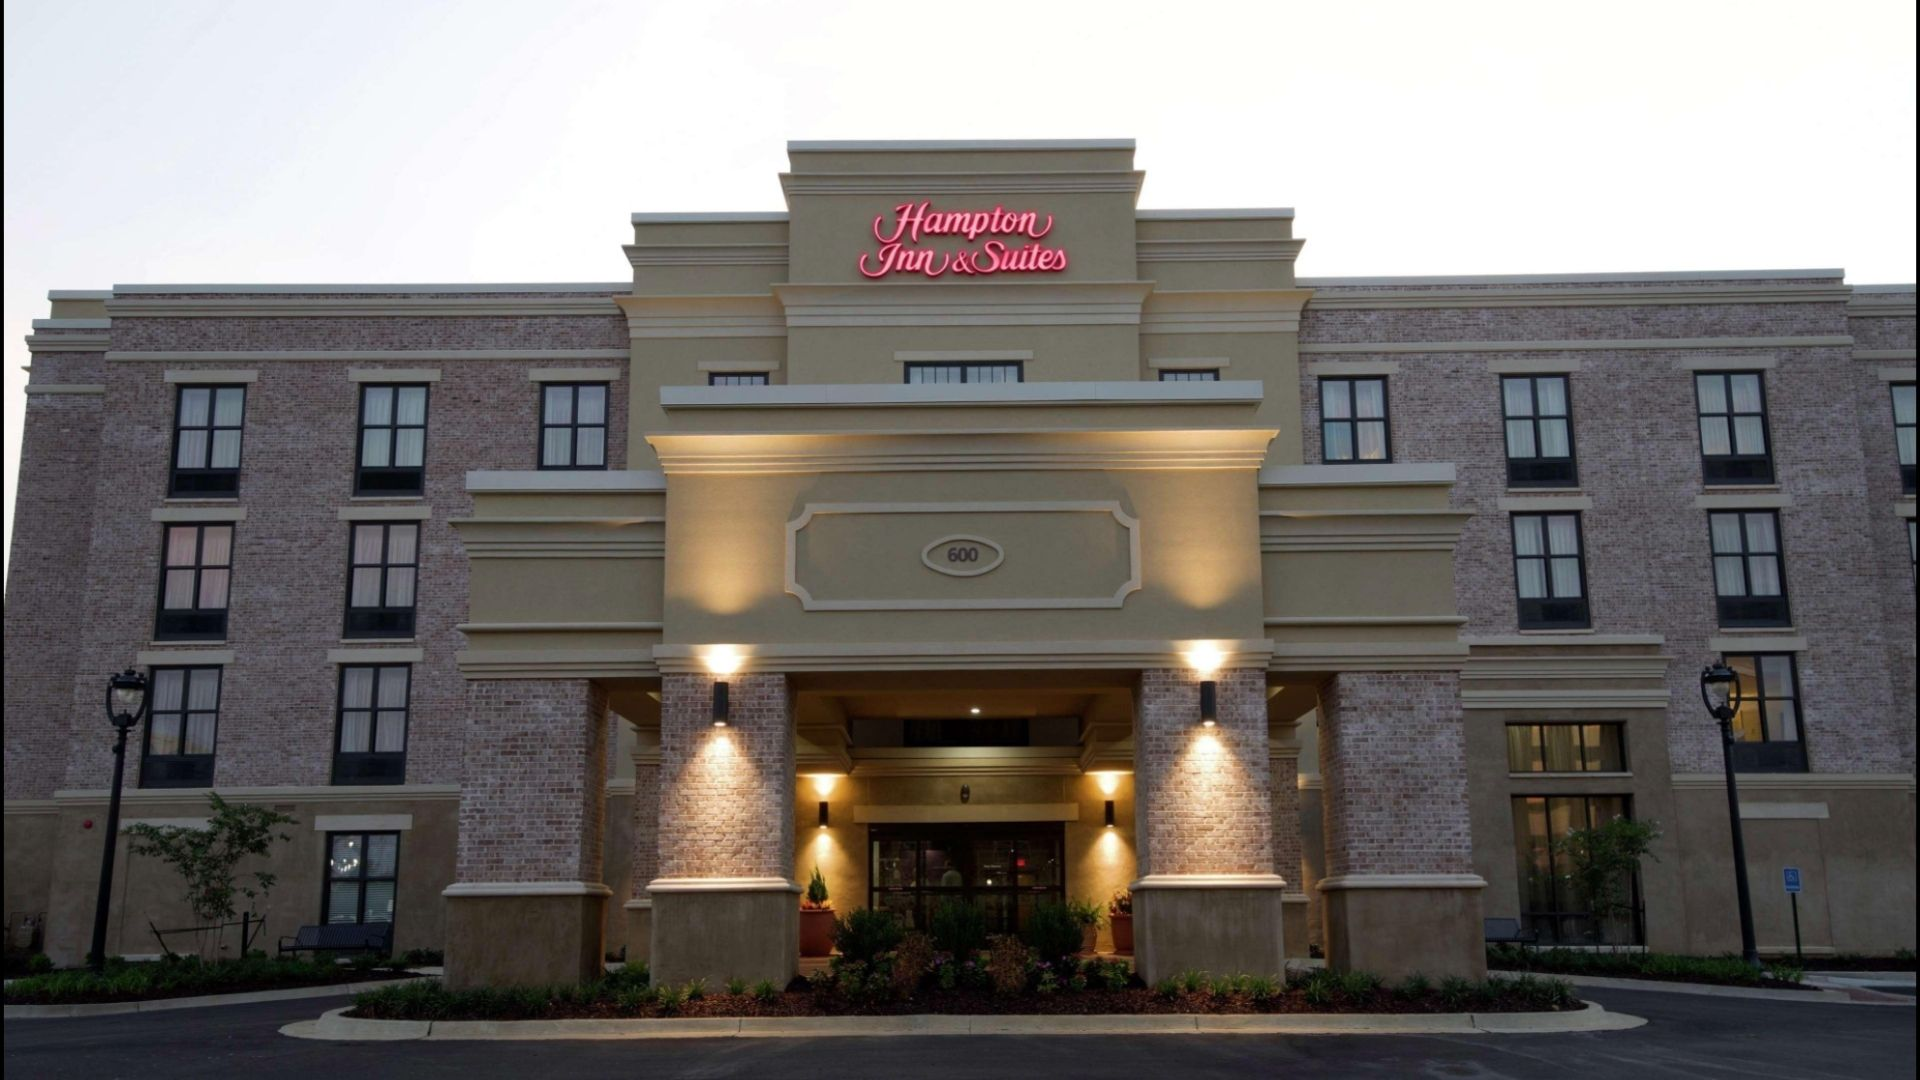 Hampton Inn & Suites ridgeland Resized